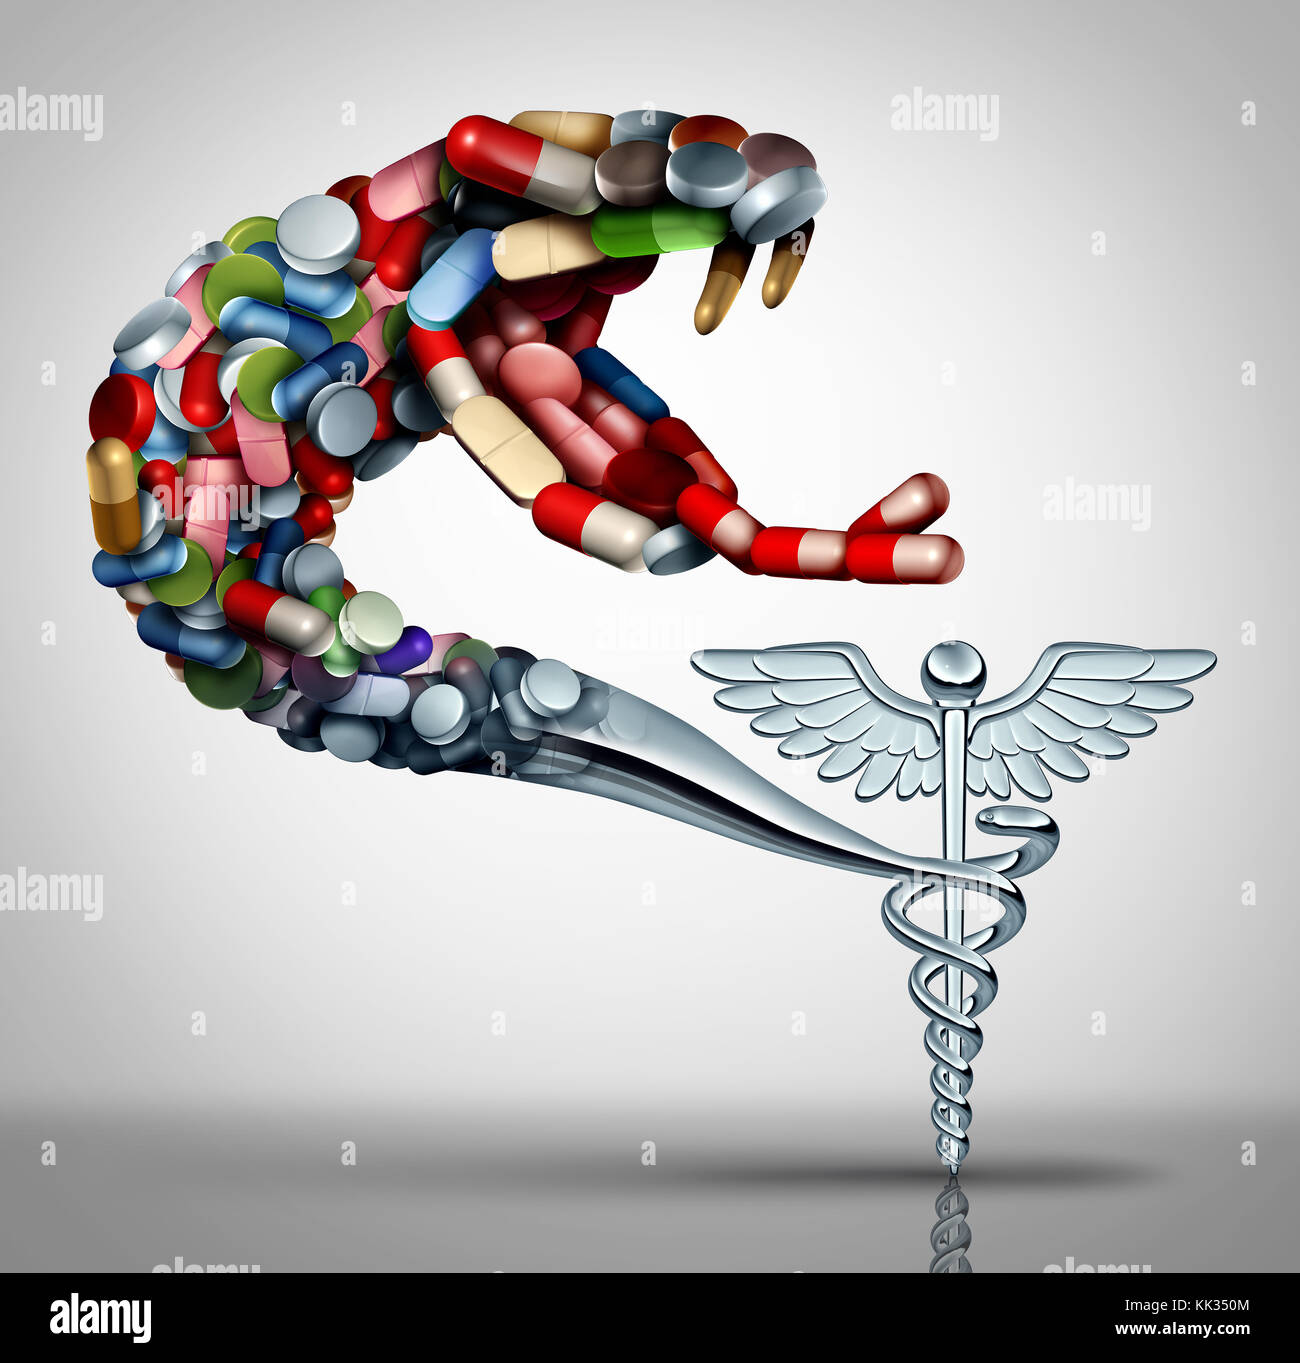 Medication health danger and prescription drug abuse concept as a social issue symbol for the addiction to pharmaceutical - Stock Image